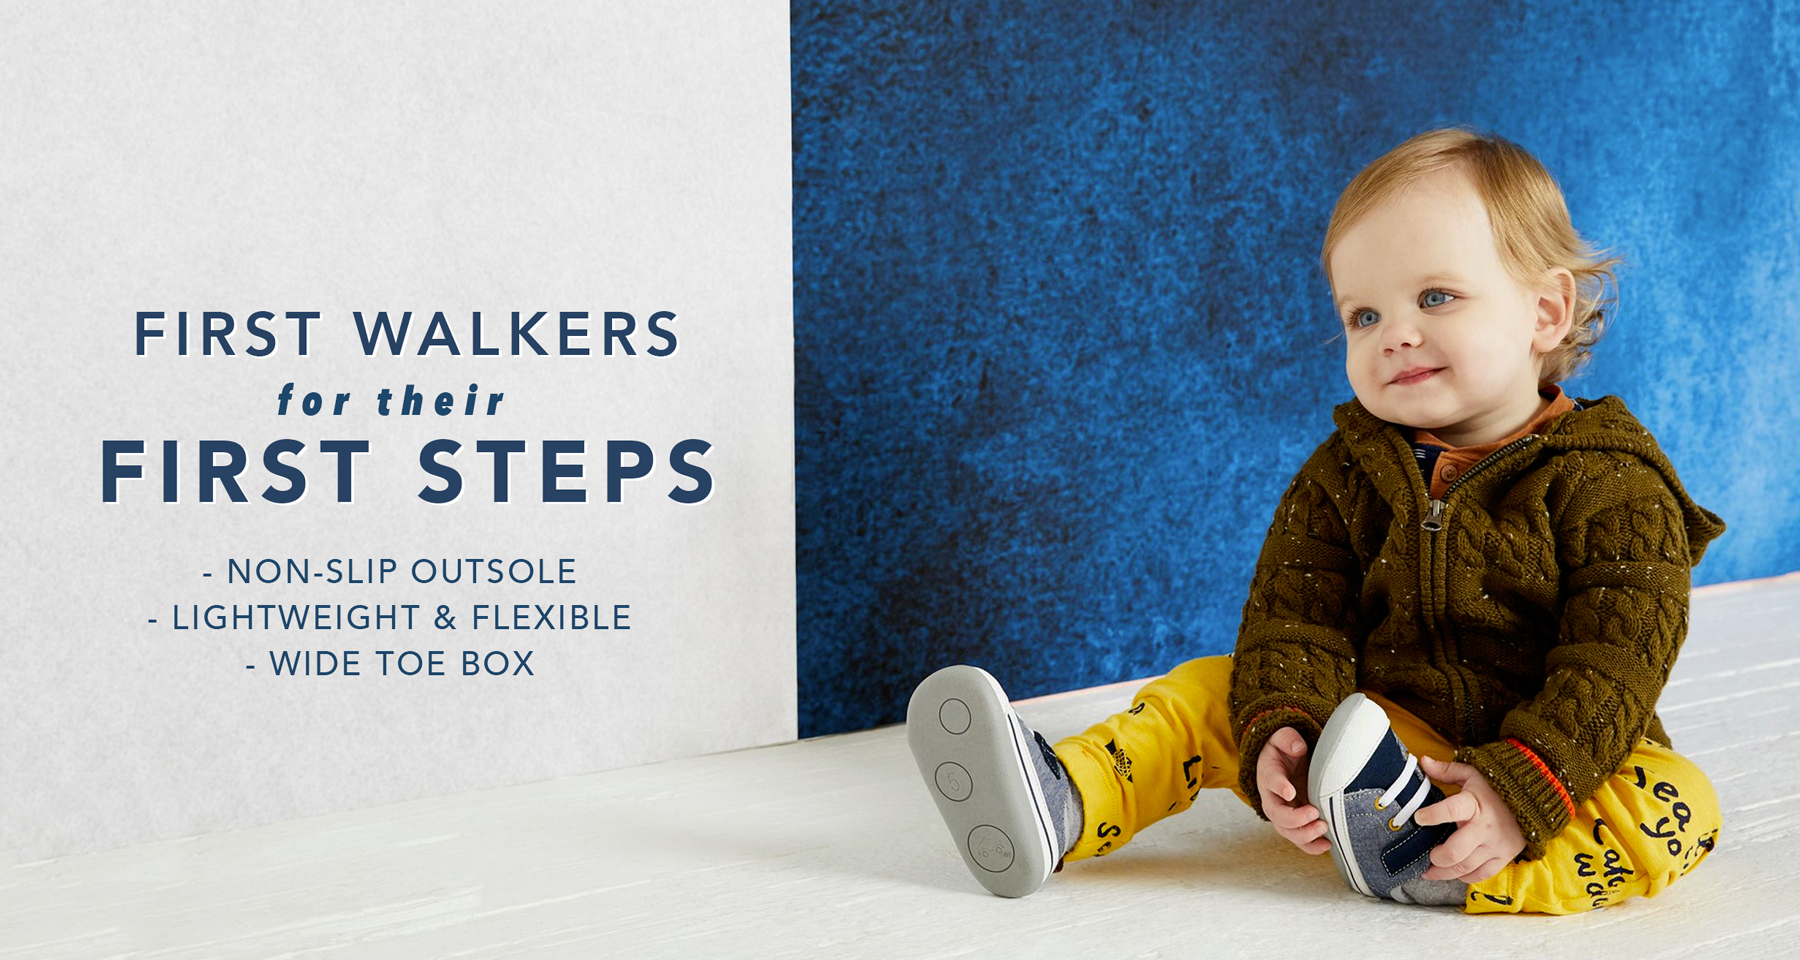 First Walkers for their First Steps. Non-slip outsole. Lightweight & Flexible. Wide toe box